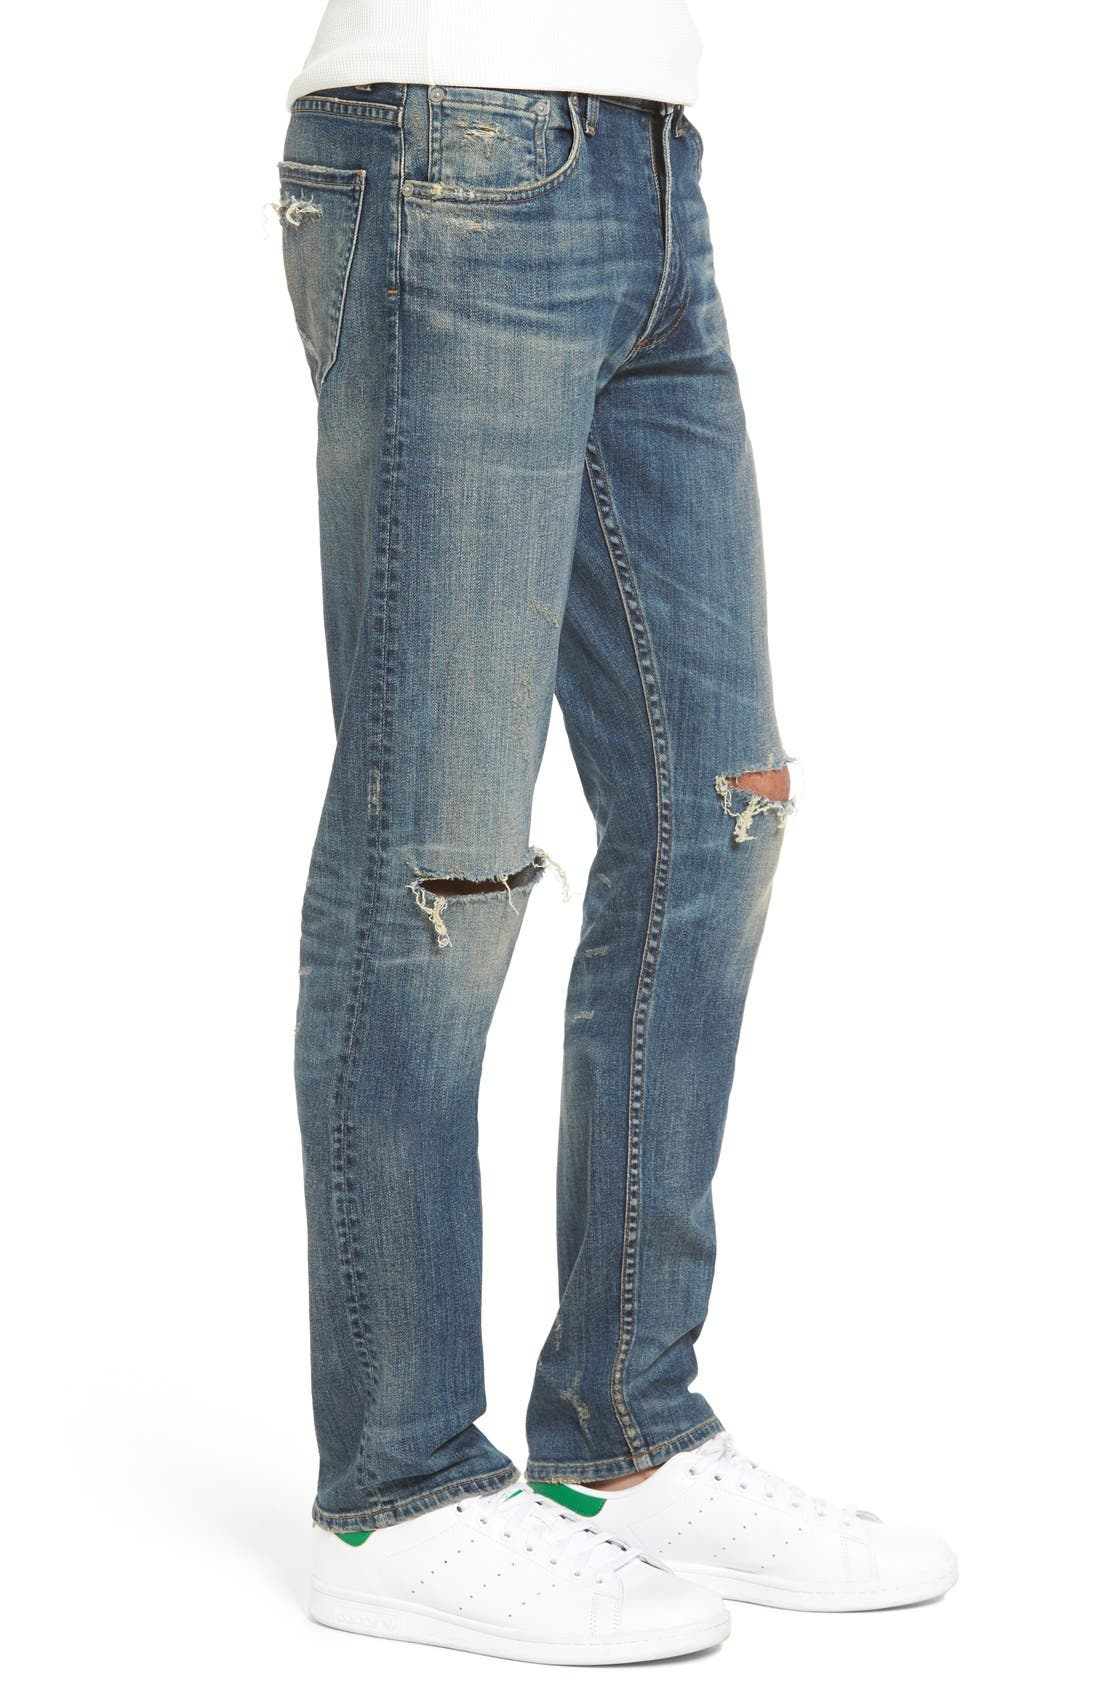 Bowery Slim Fit Jeans,                             Alternate thumbnail 3, color,